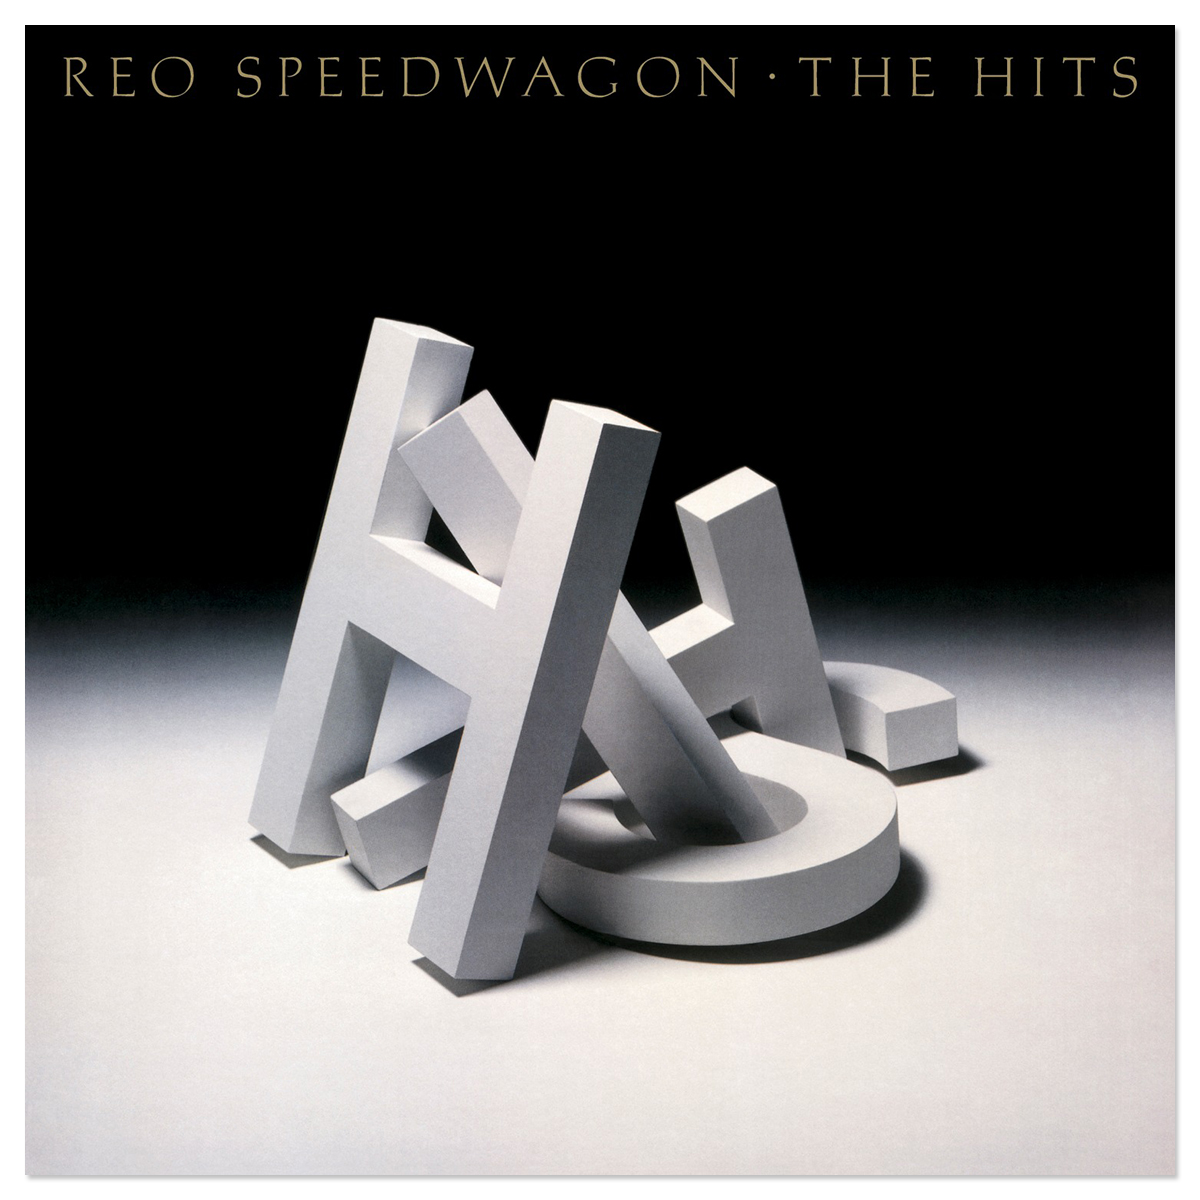 REO Speedwagon - The Hits (180 Gram Audiophile Translucent Blue Vinyl/Limited Anniversary Edition/Gatefold Cover)